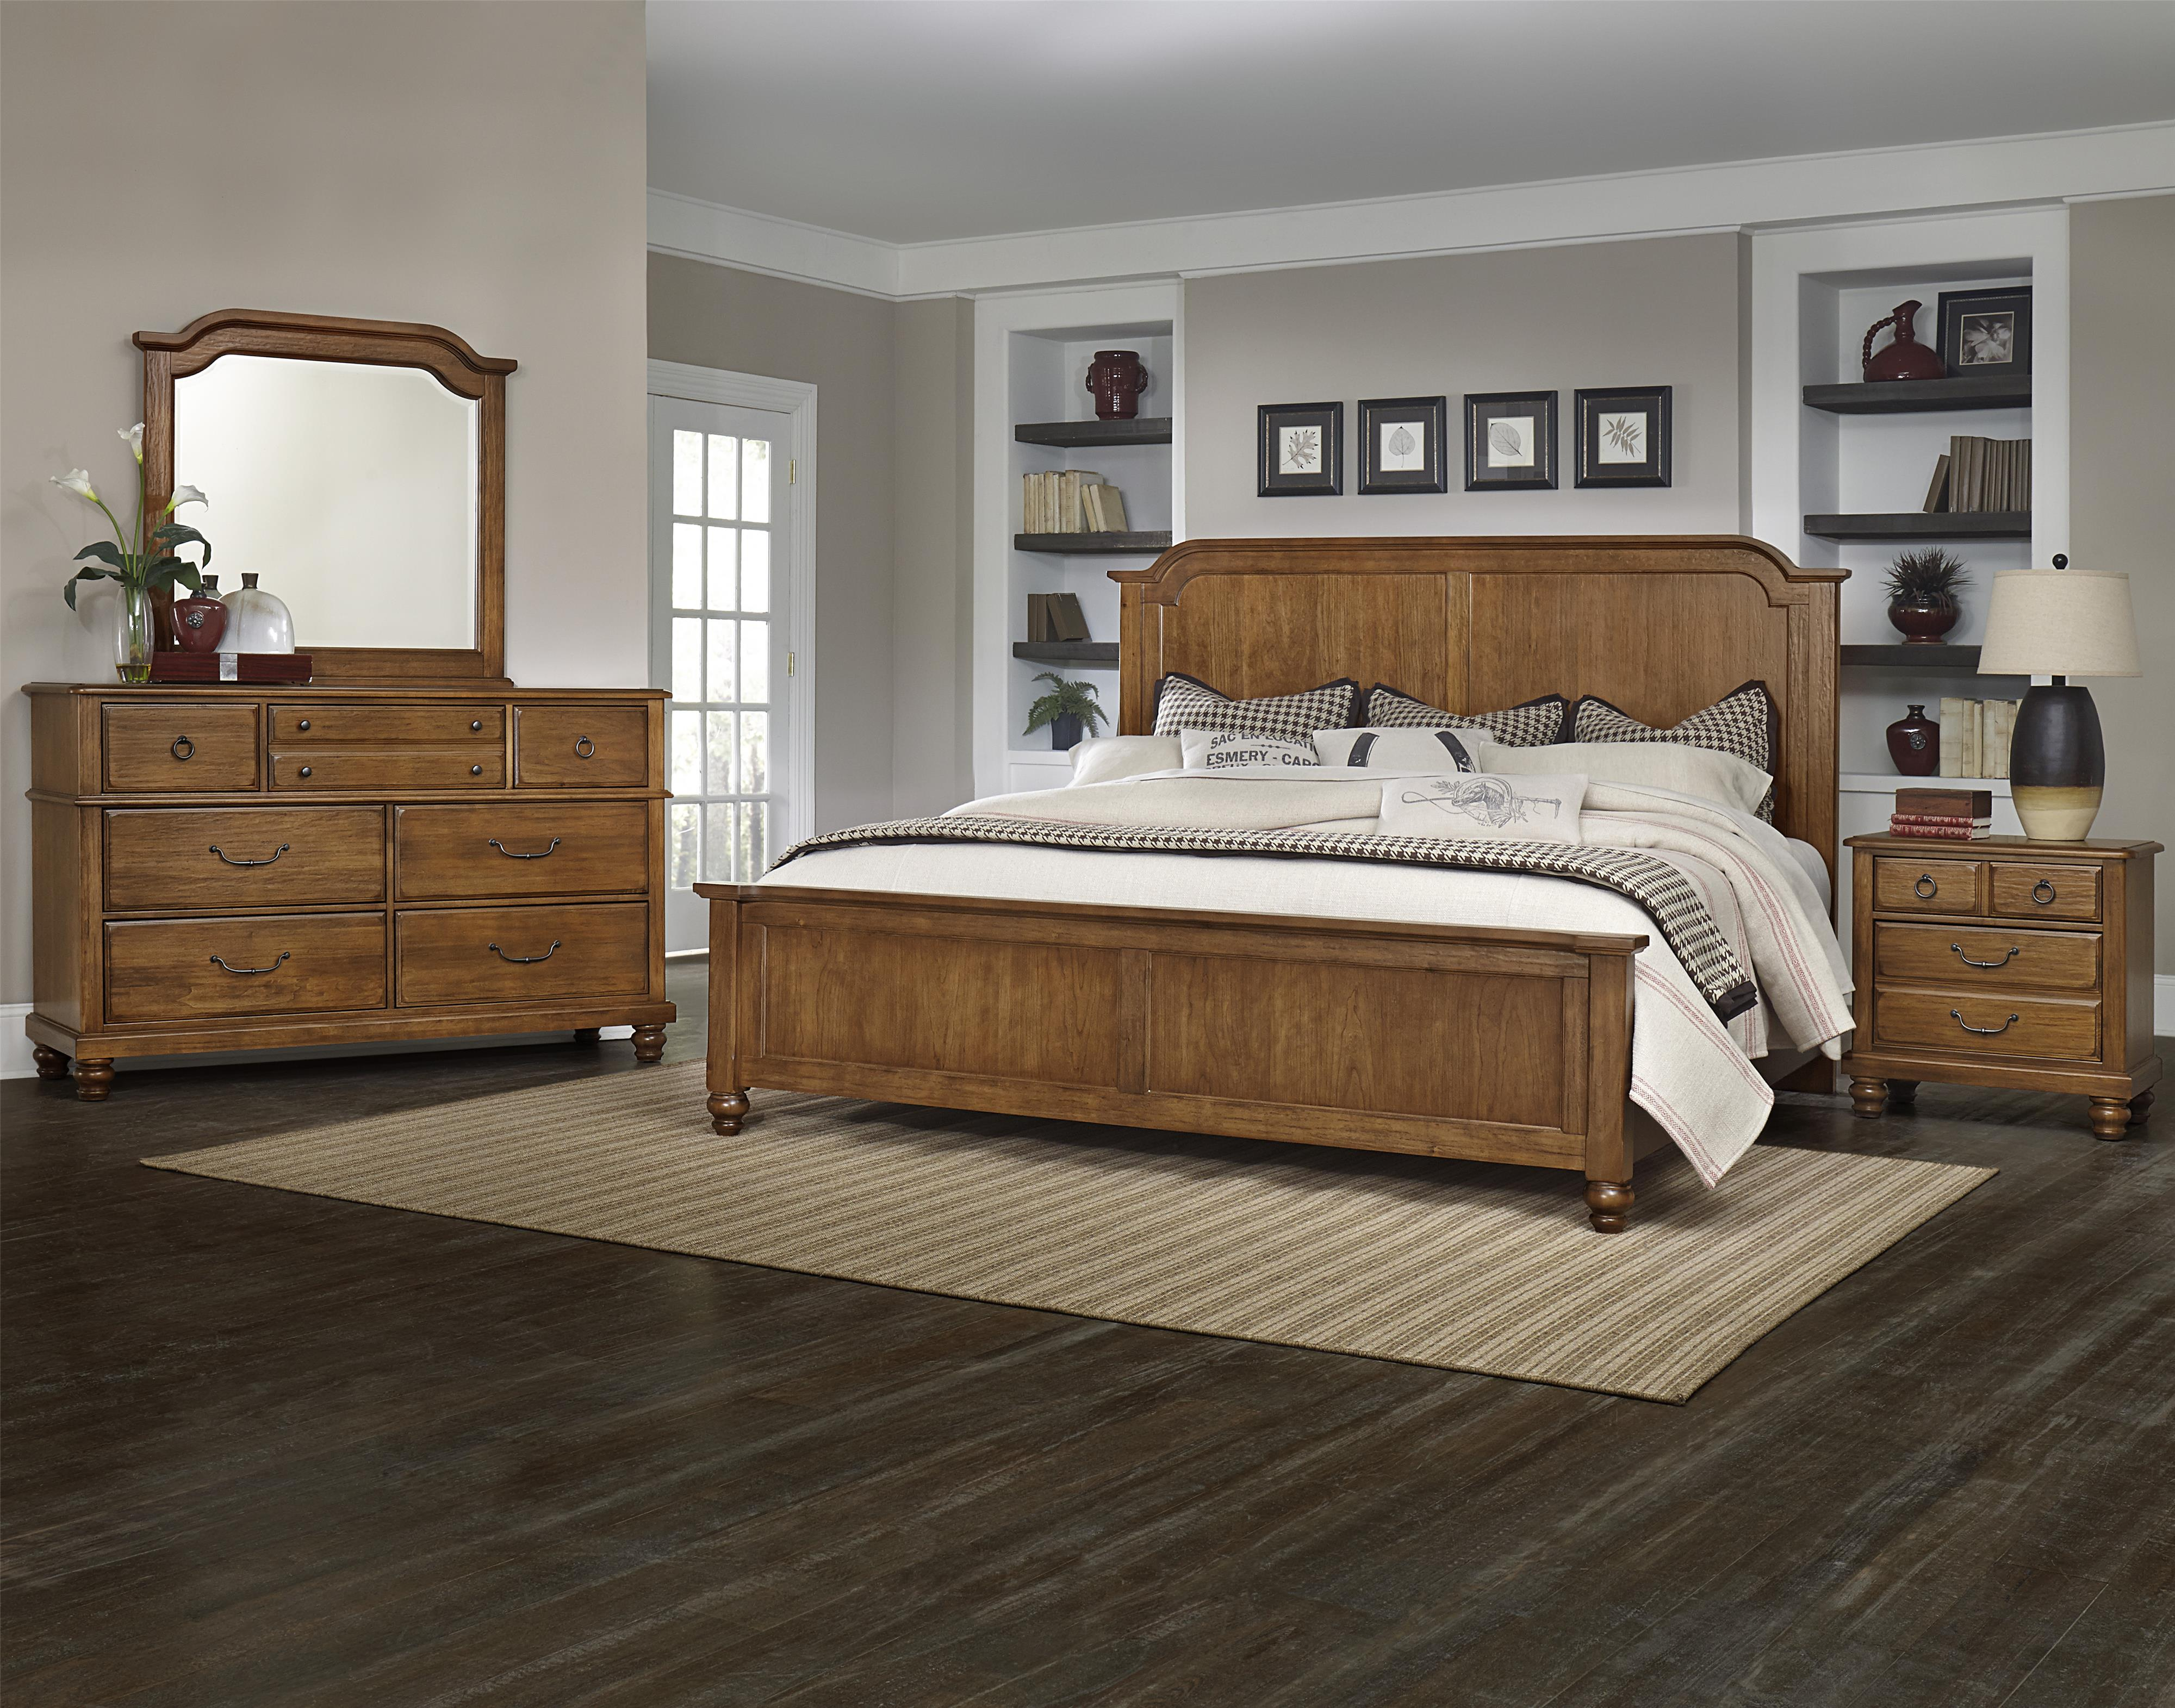 Vaughan Bassett Arrendelle King Bedroom Group Dunk Bright Furniture Bedroom Group